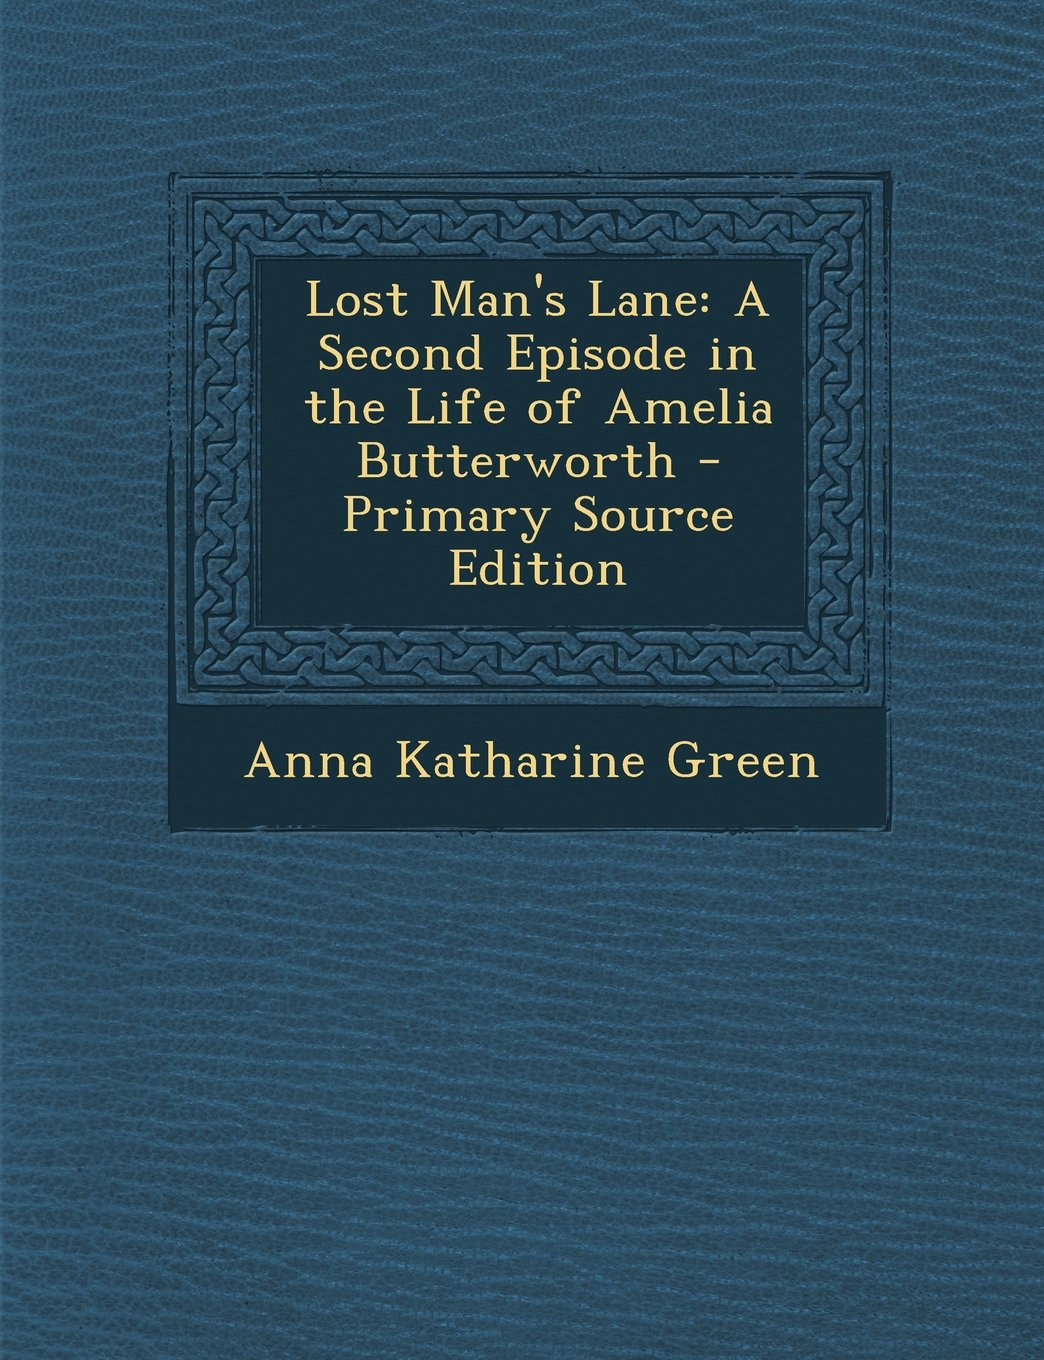 Read Online Lost Man's Lane: A Second Episode in the Life of Amelia Butterworth - Primary Source Edition ePub fb2 ebook